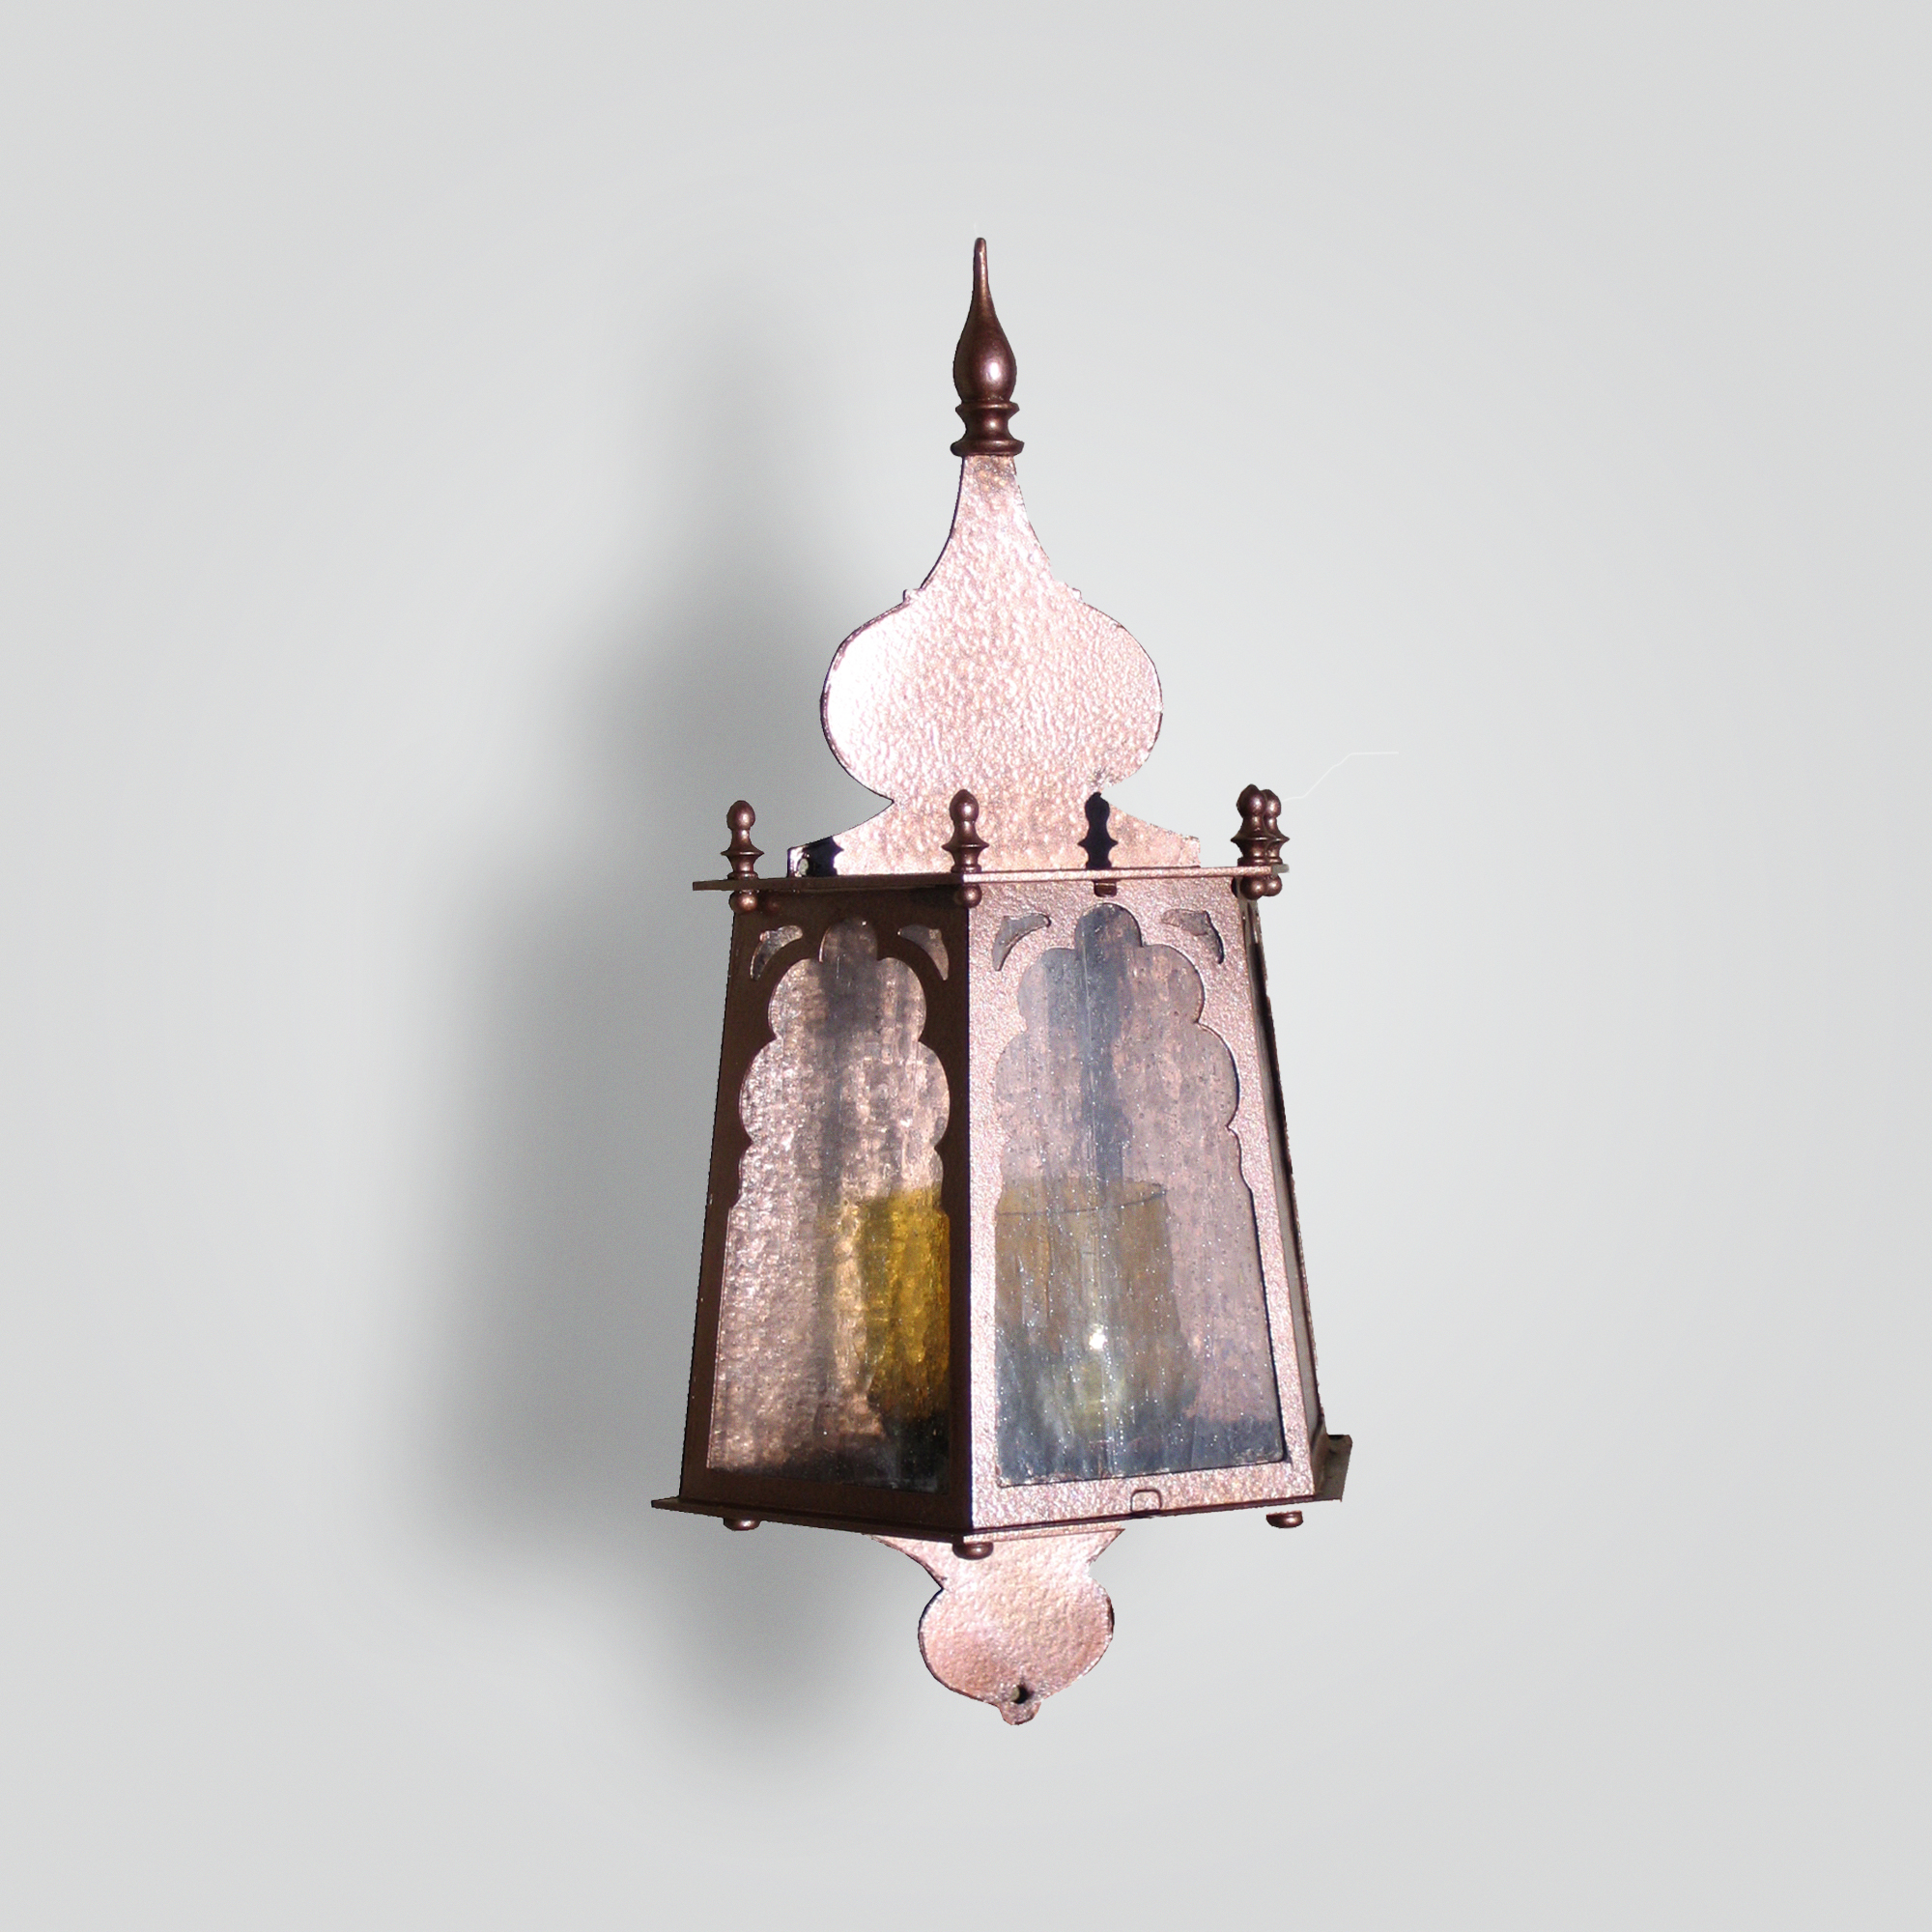 735-mb1-st-w-sh Domes Exterior Light – ADG Lighting Collection